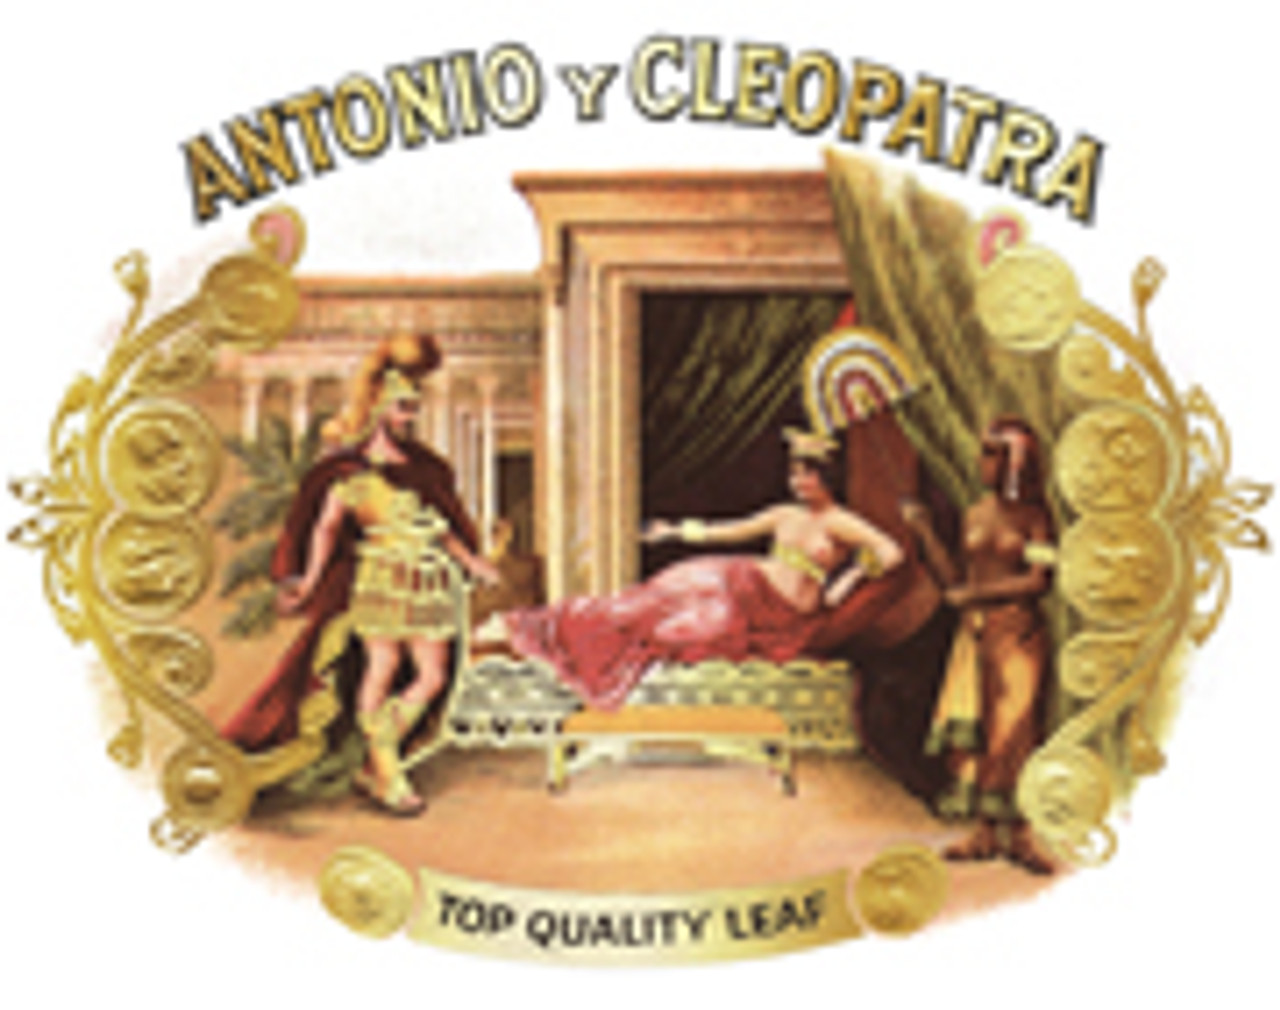 Antonio Y Cleopatra Grenadier Cigars (Box of 50) - EMS